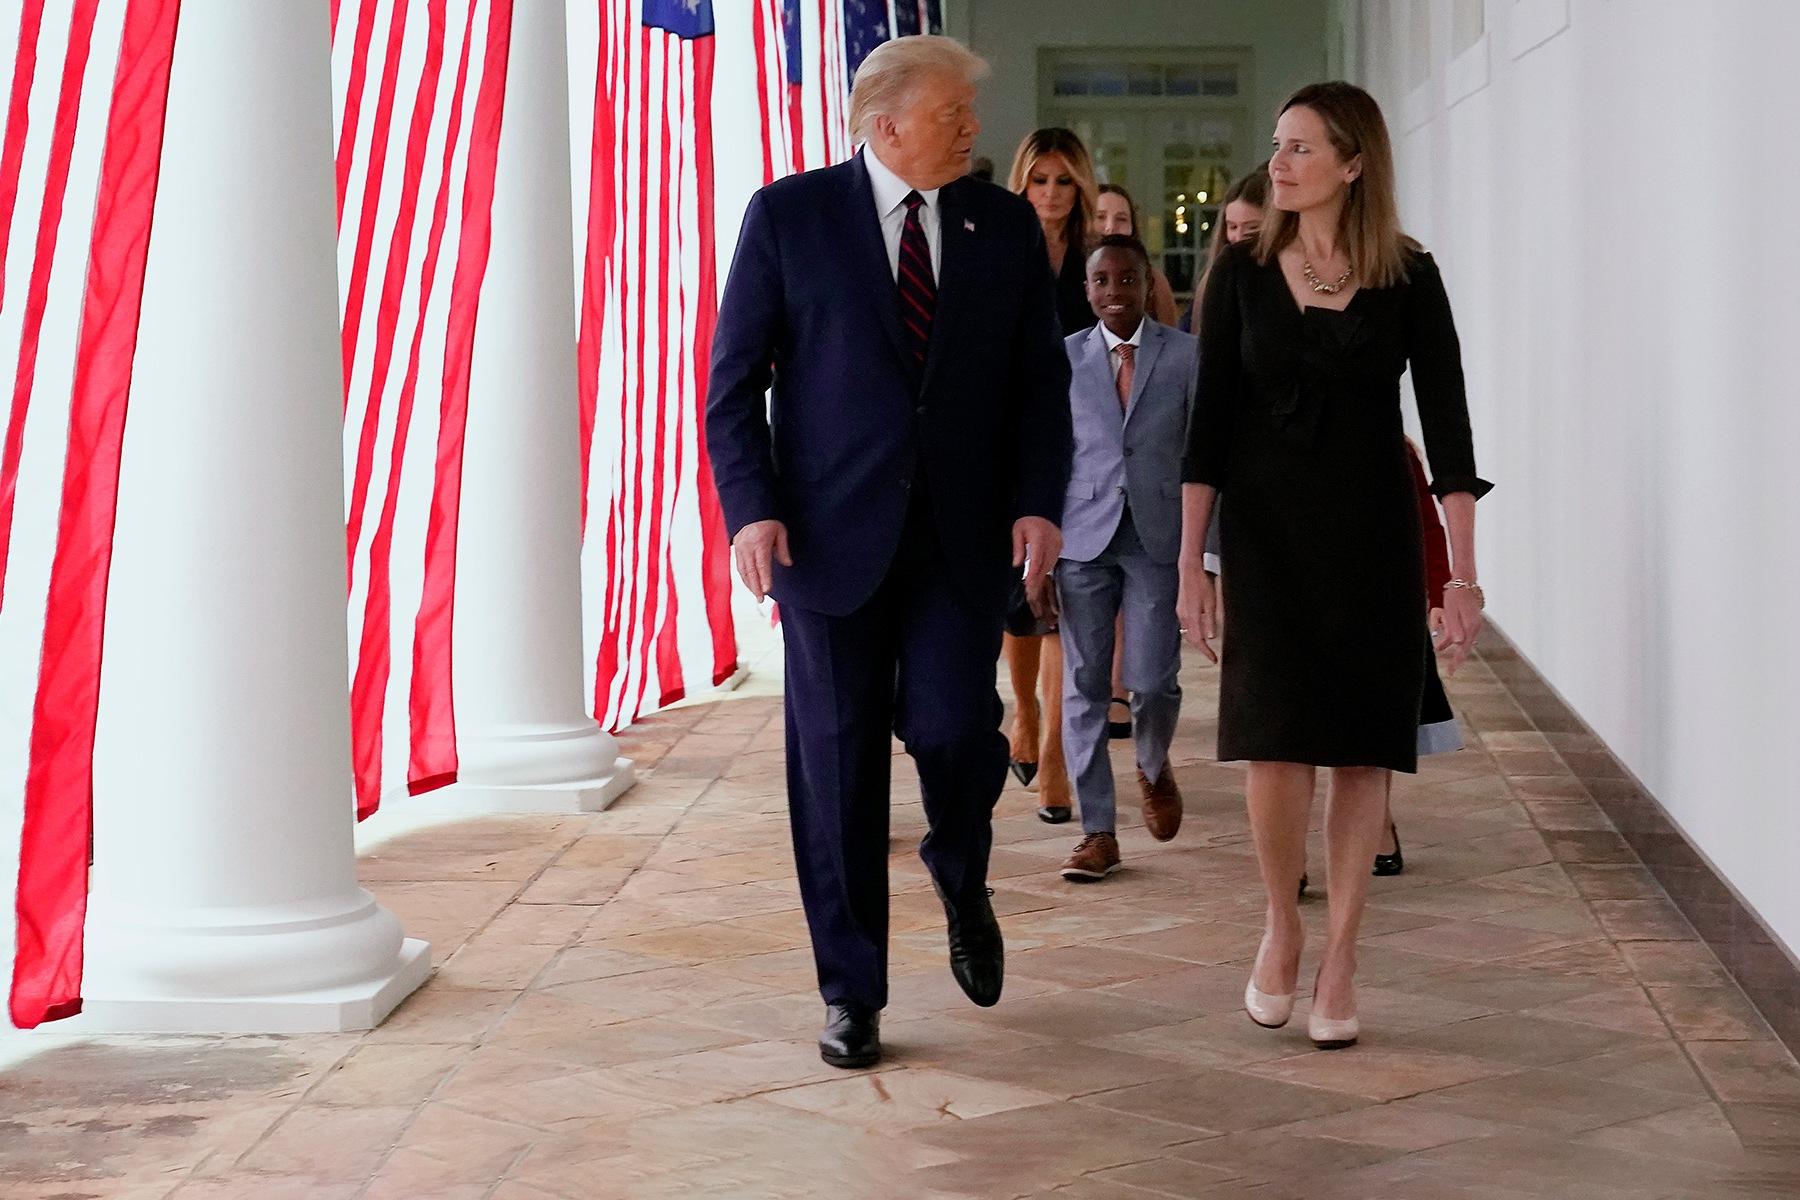 President Donald Trump walks along the Colonnade with Judge Amy Coney Barrett after a news conference to announce Barrett as his nominee to the Supreme Court, in the Rose Garden at the White House, Saturday, Sept. 26, 2020, in Washington. (AP Photo/Alex Brandon)